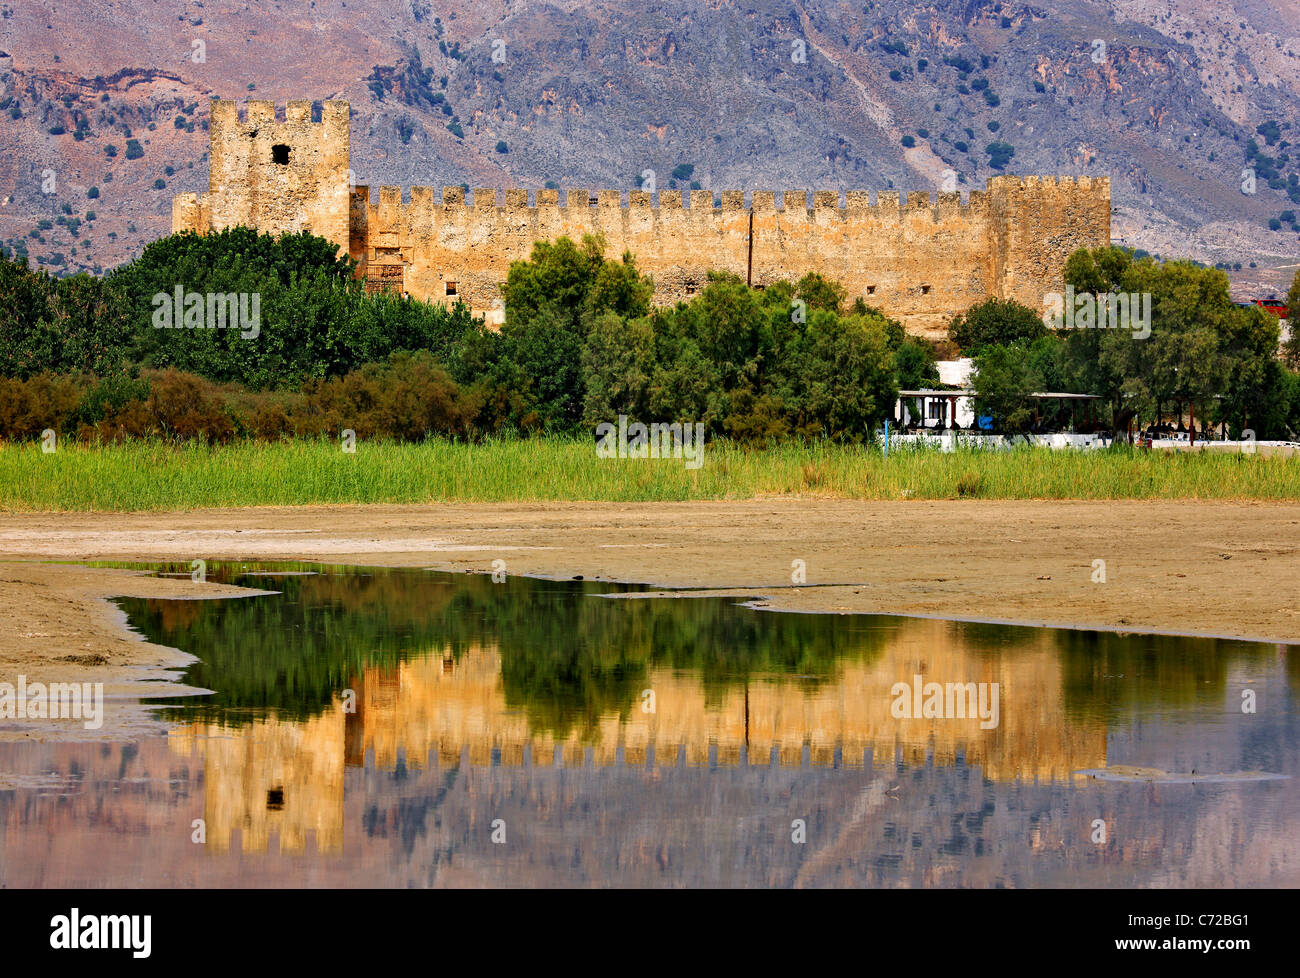 The Frangocastelo , in the East of the remote and 'wild' region of Sfakia, to the south of Chania Prefecture, - Stock Image